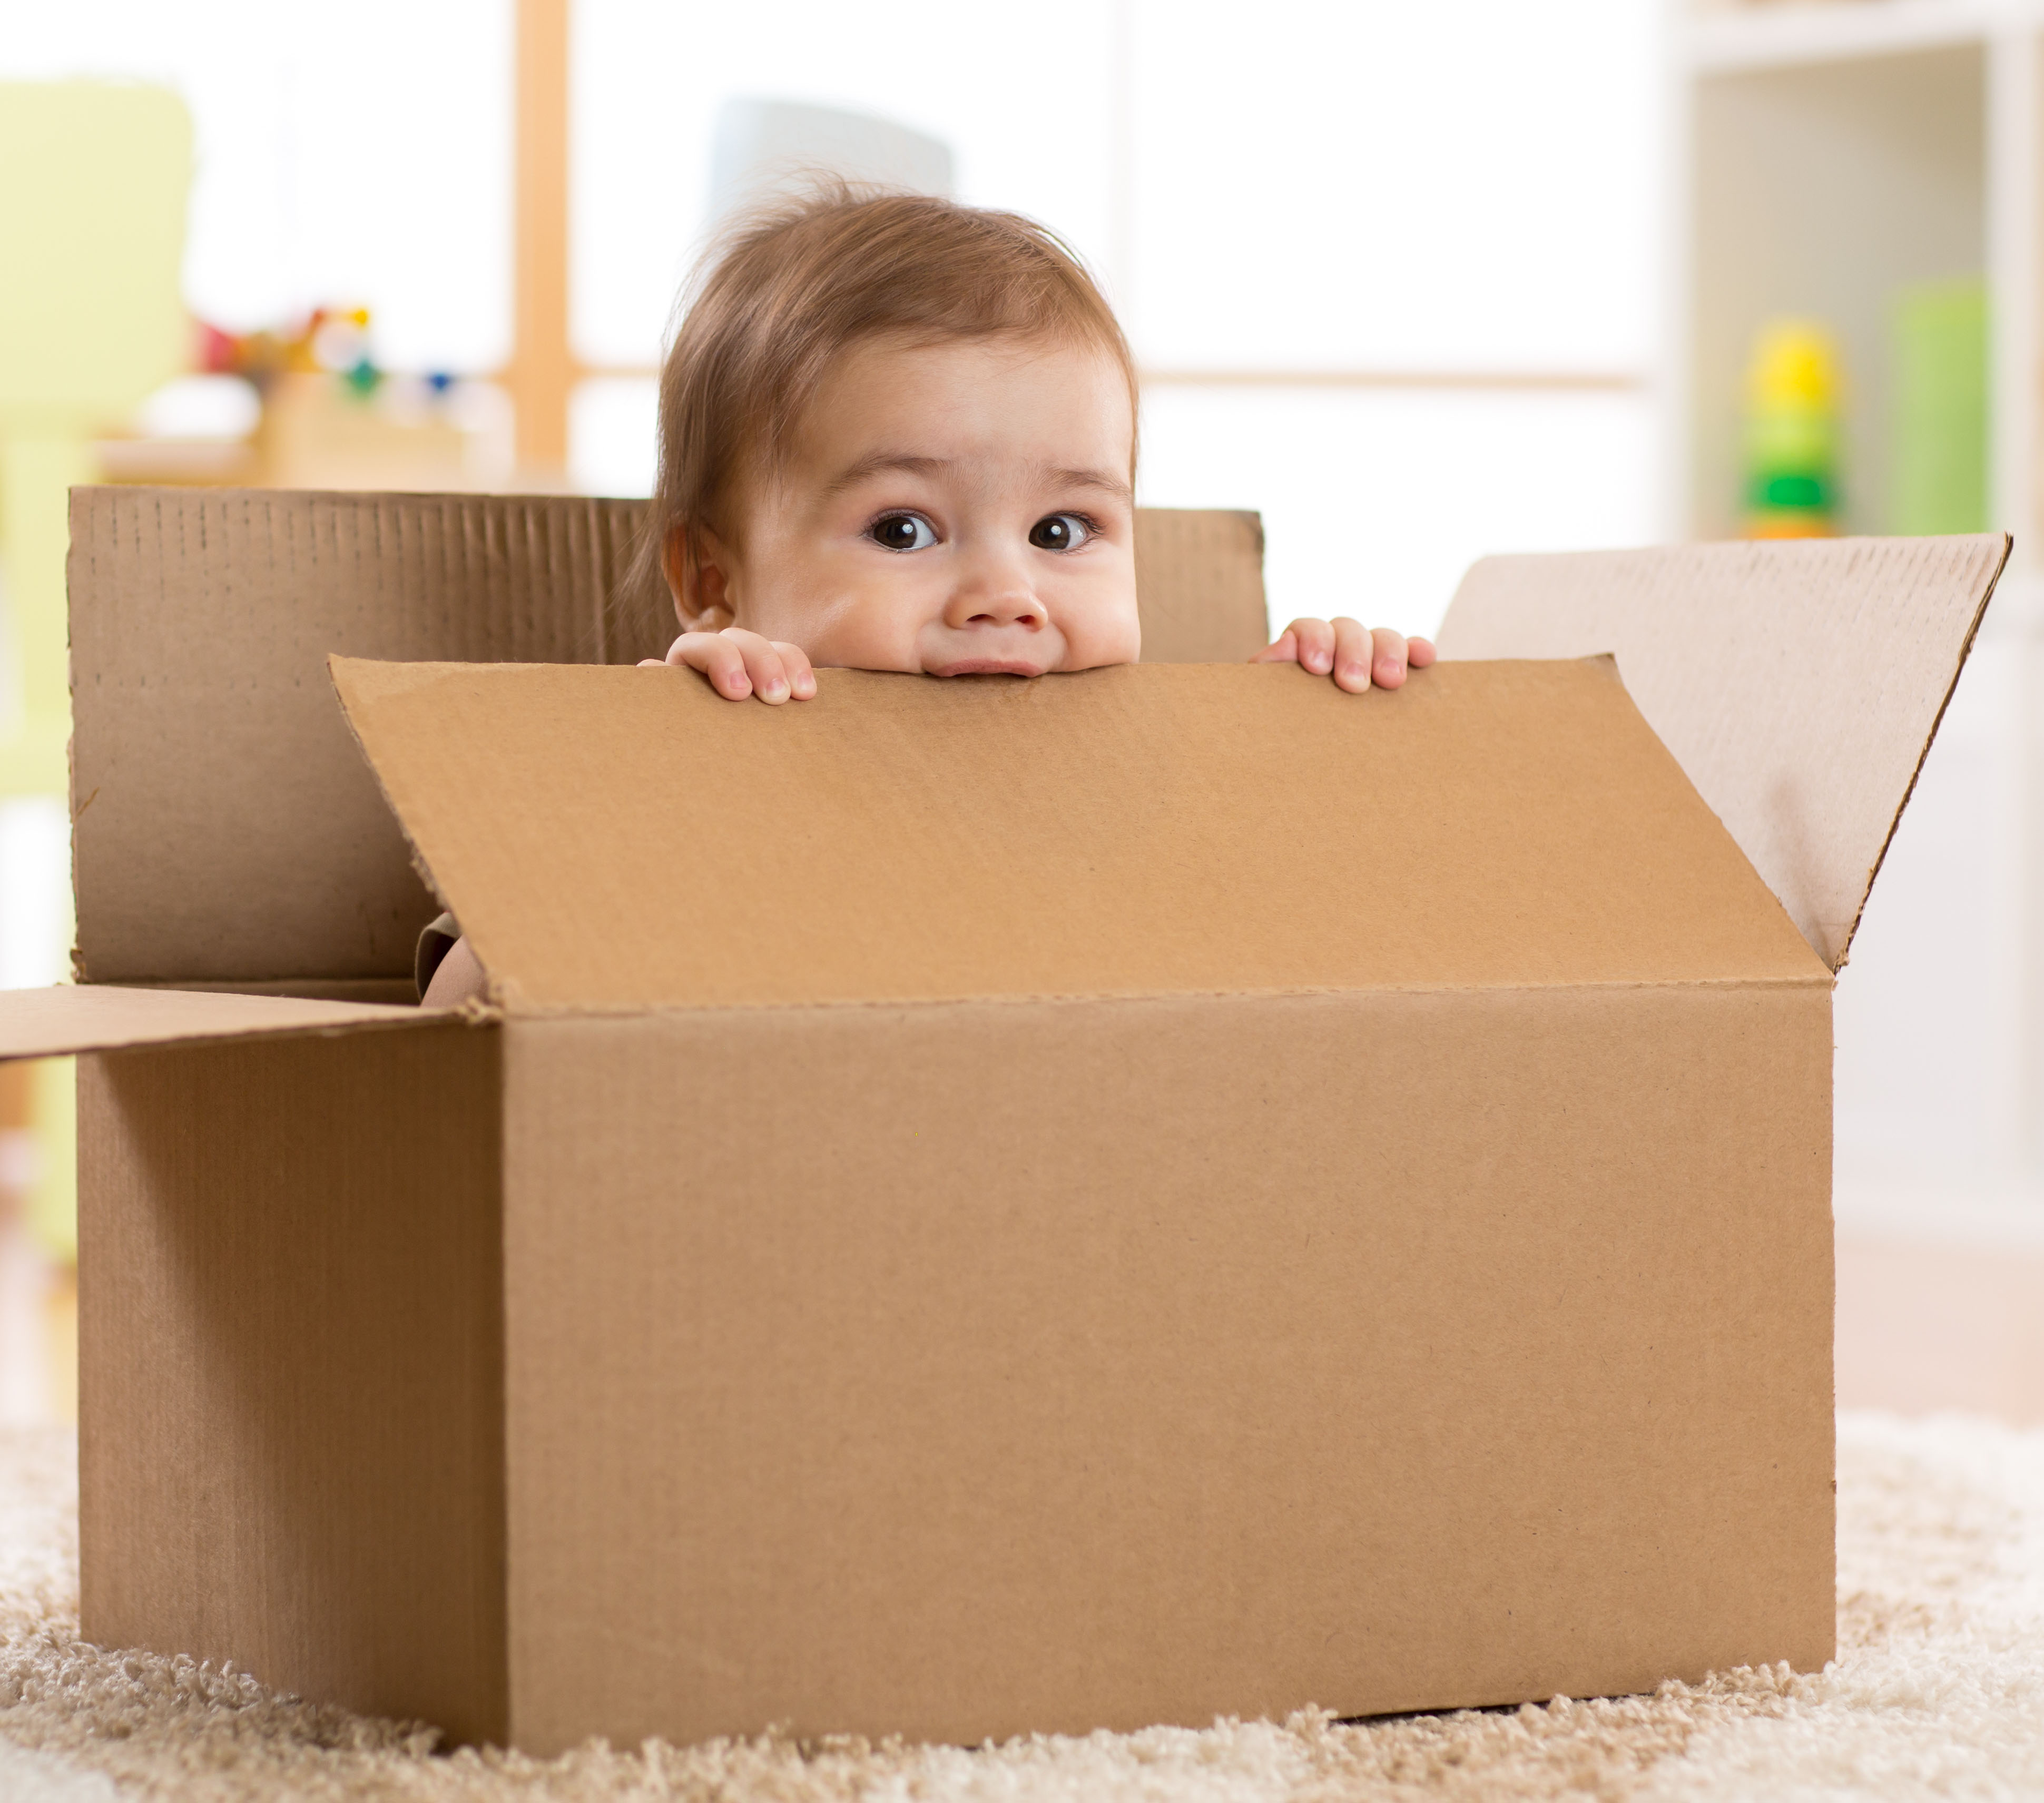 Baby in Shipping Box